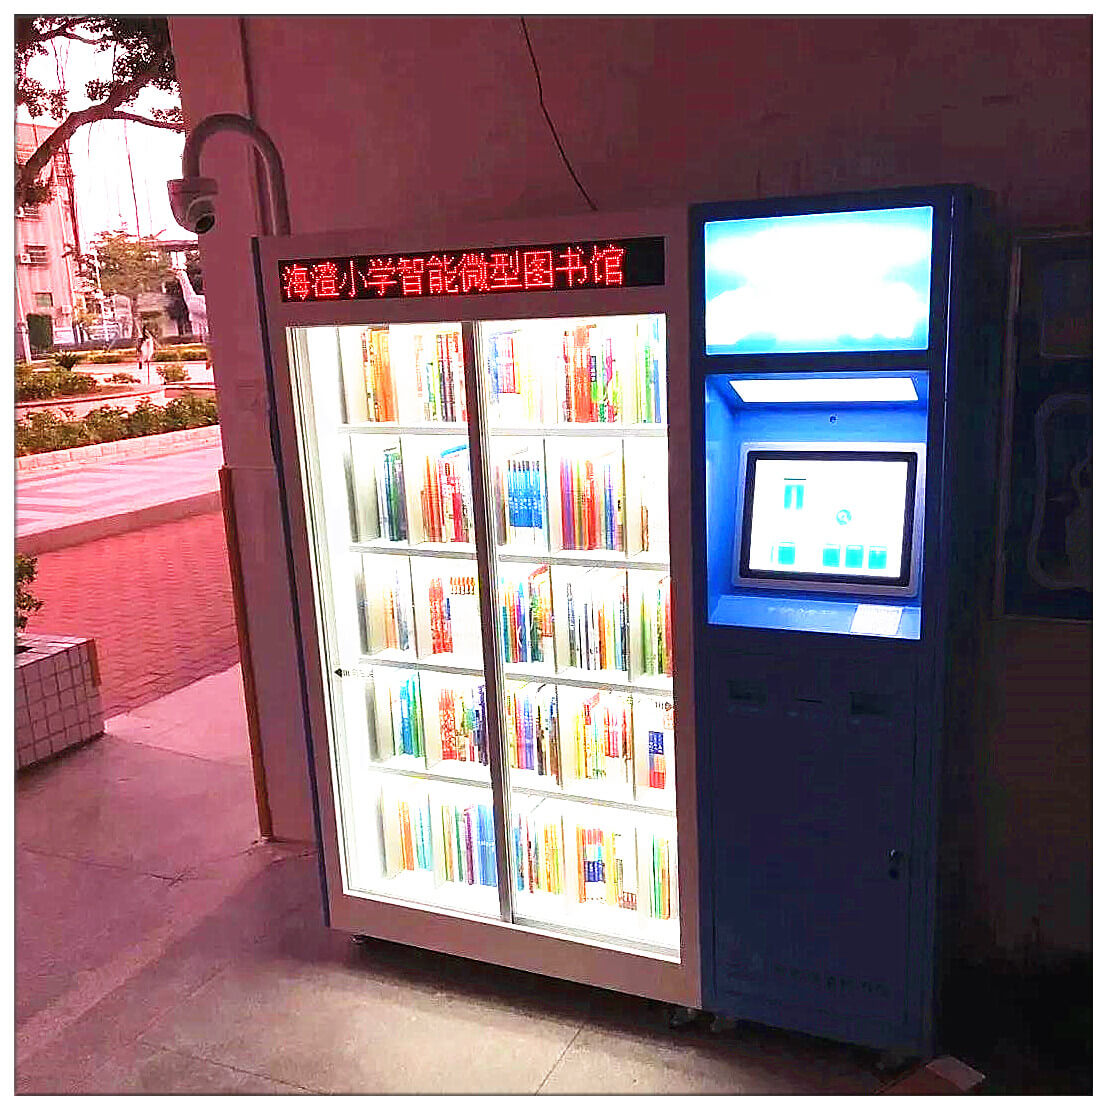 Intech smart mini library in primary school in Zhuhai city, China